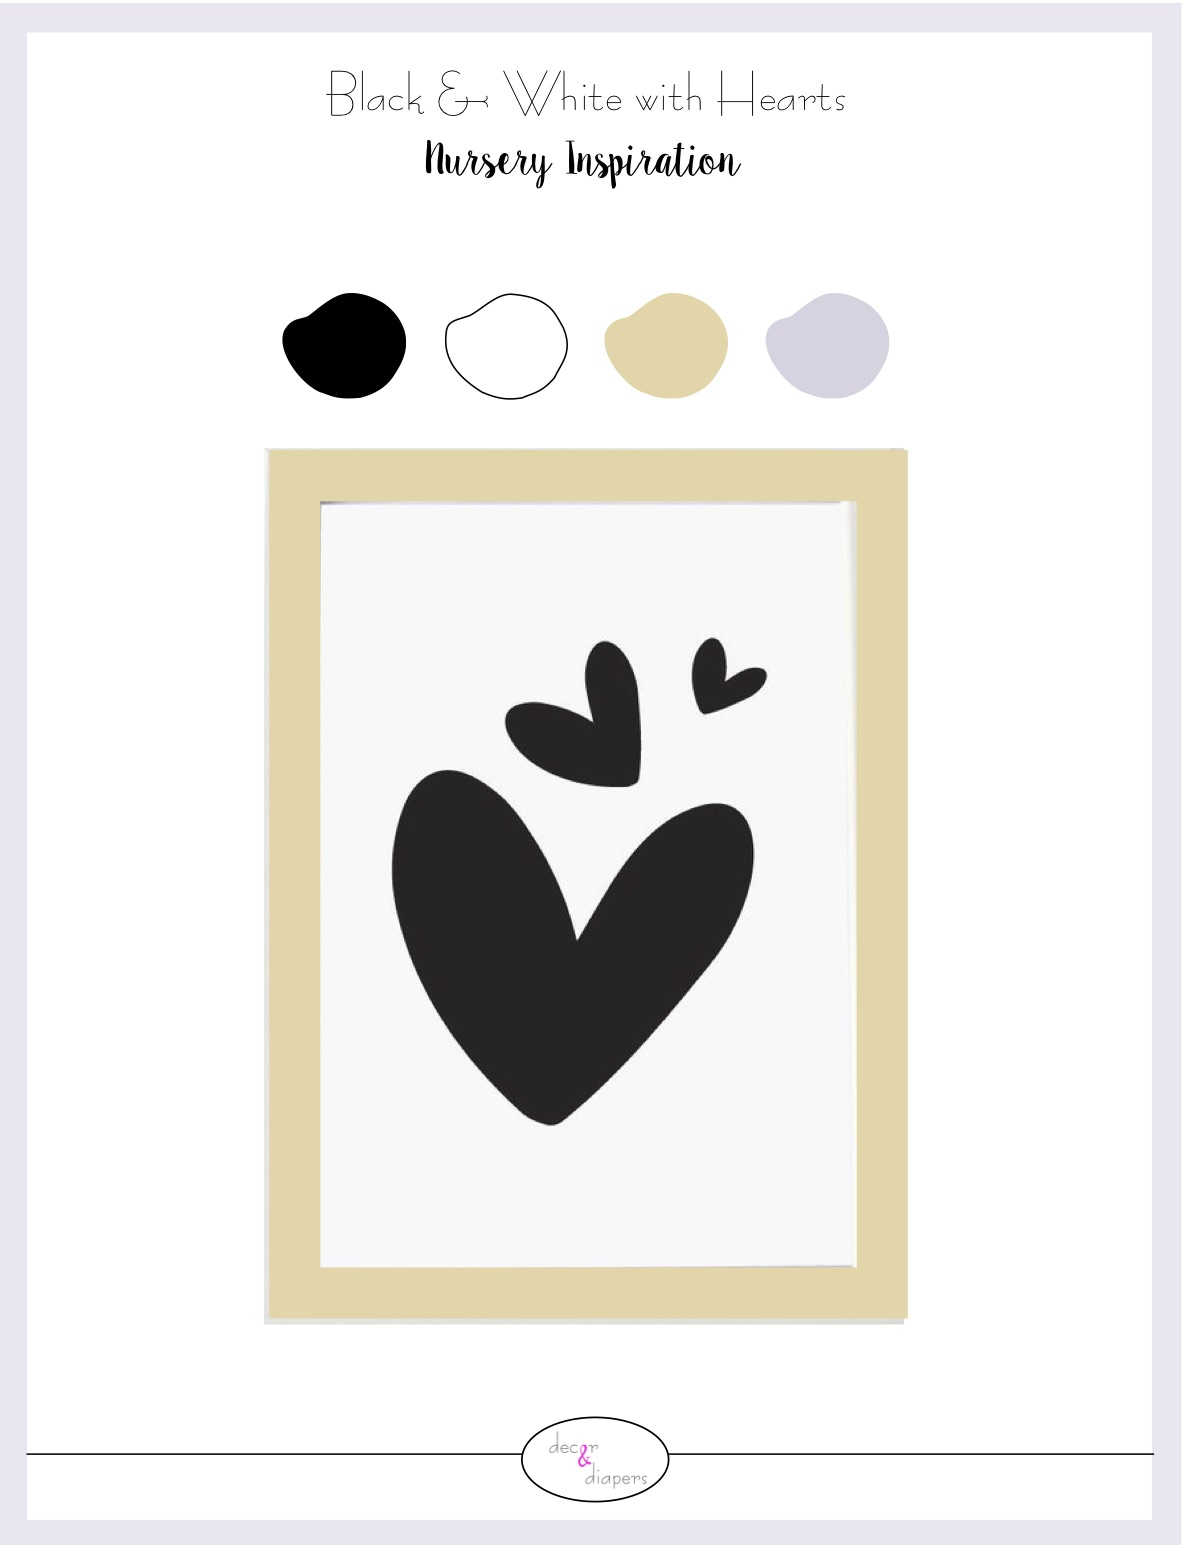 Black and White with Hearts Nursery